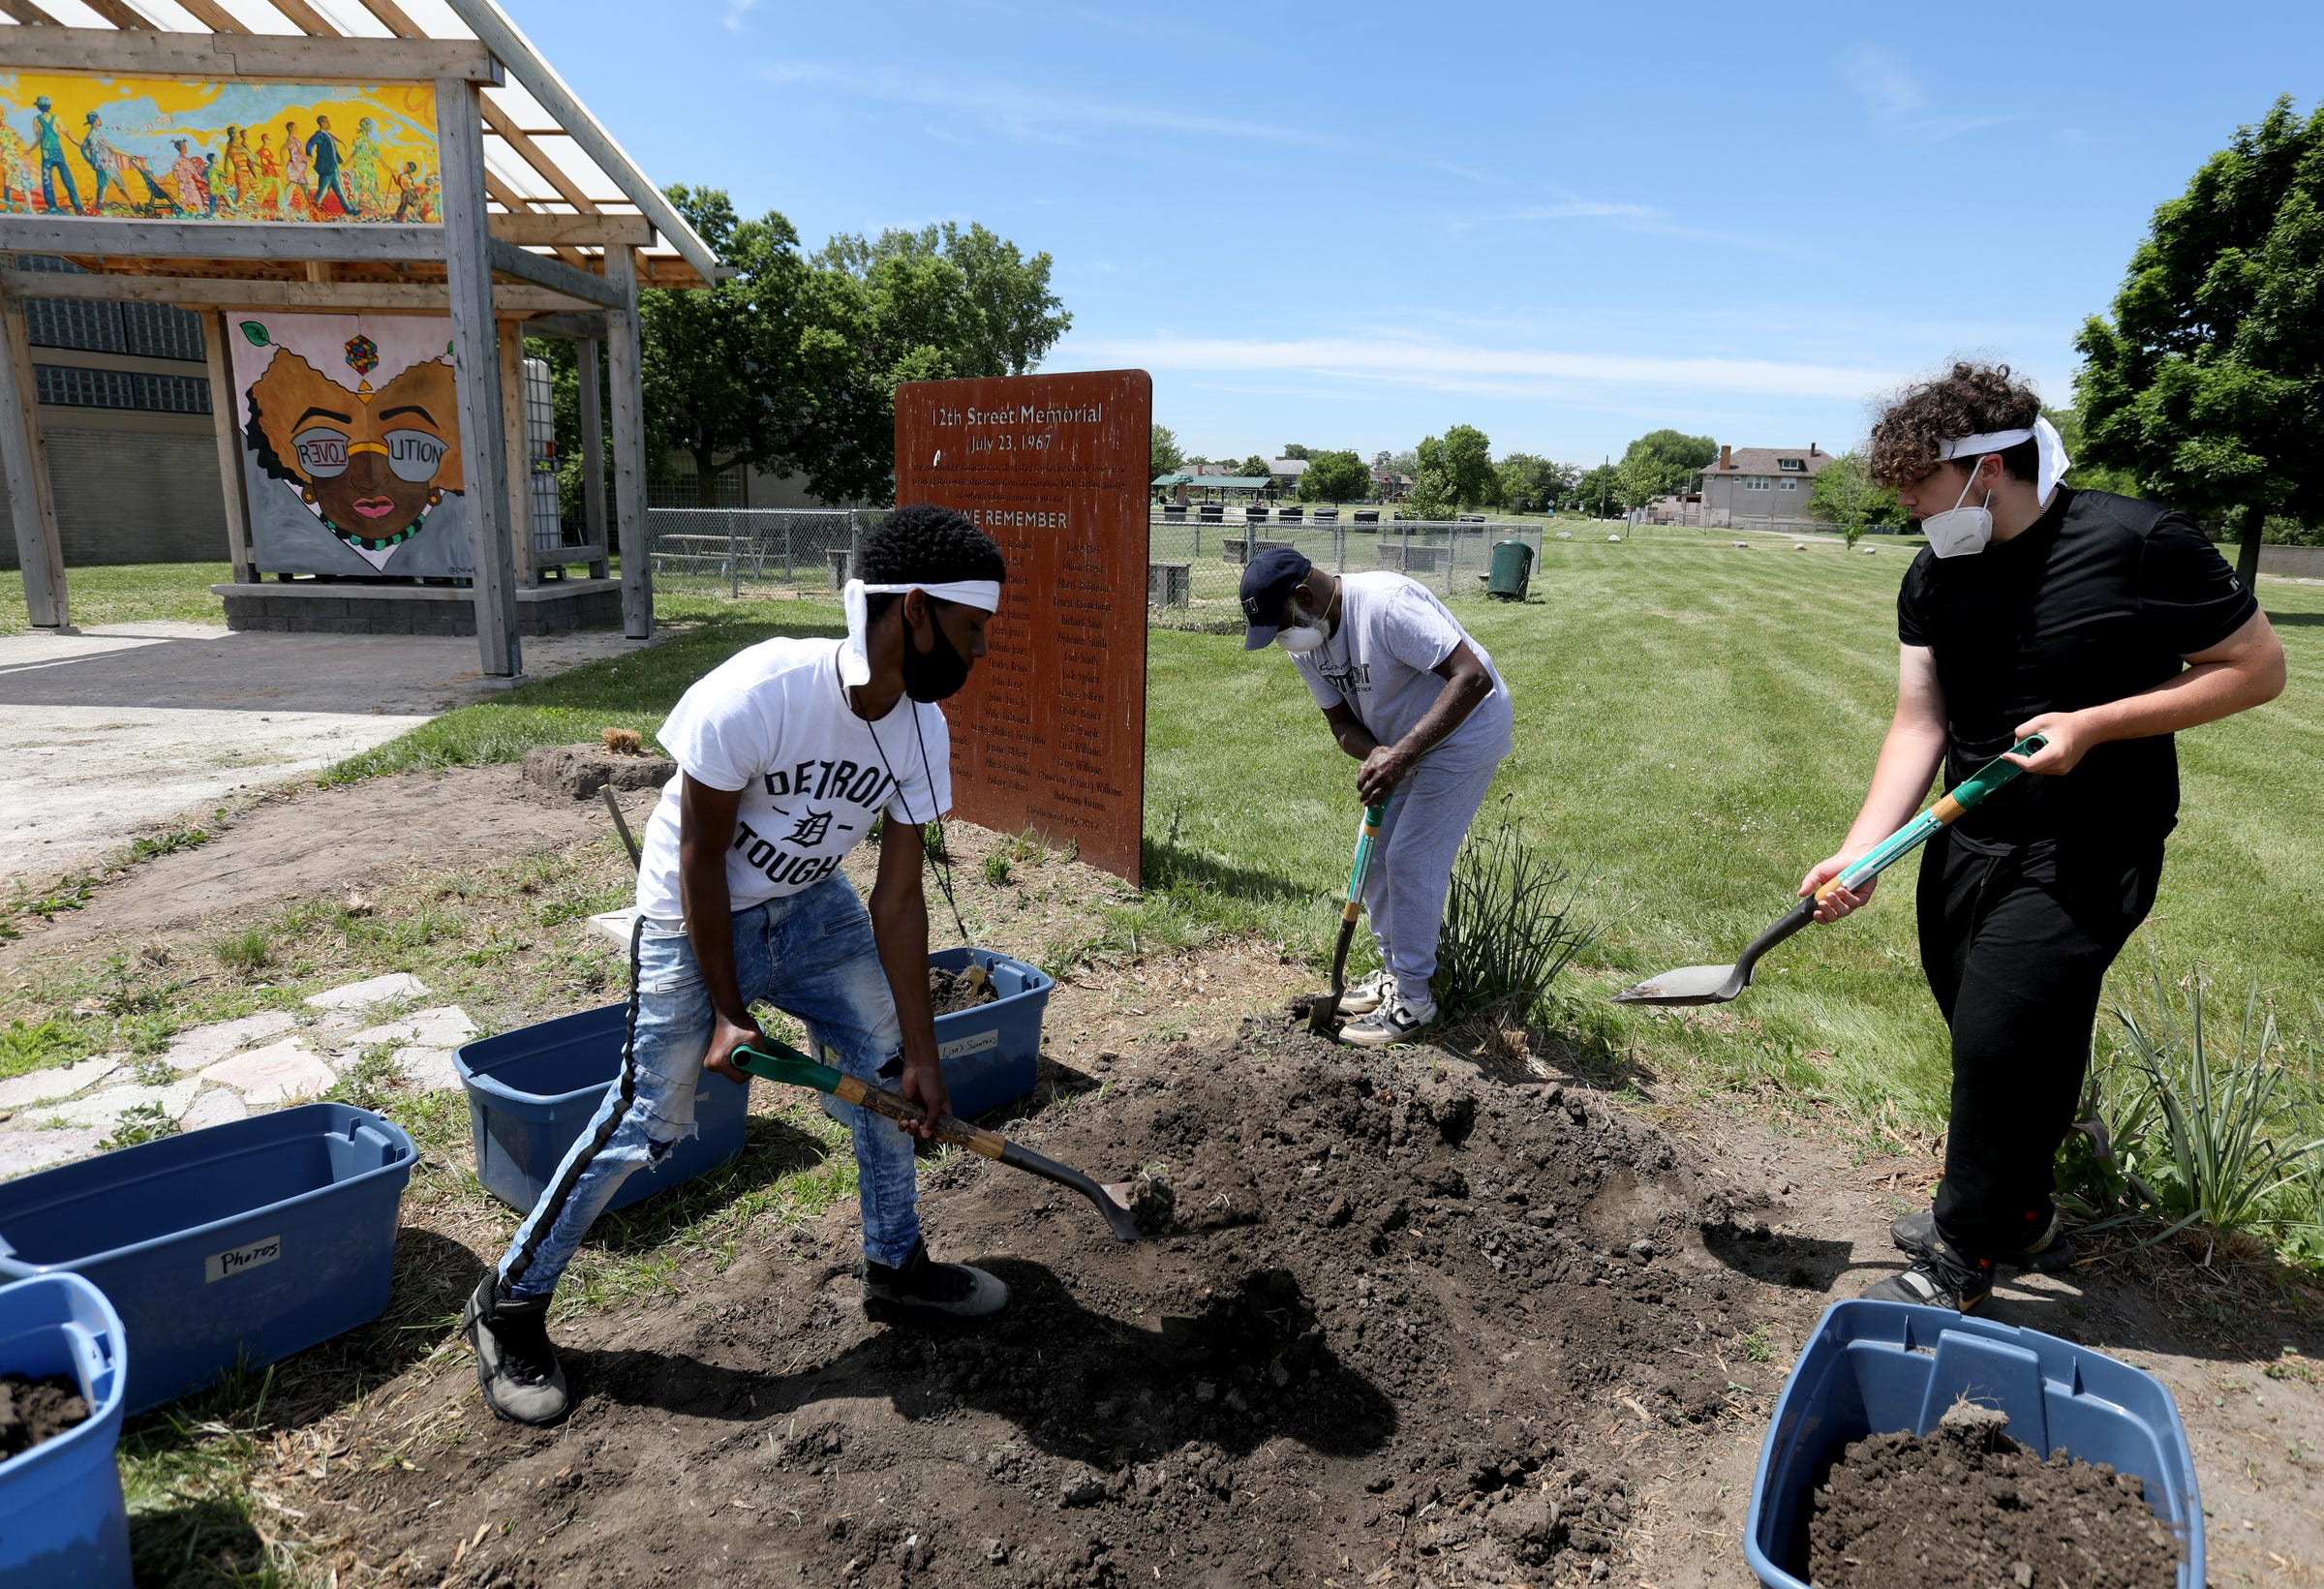 (L to R) Jeremiah Alexander, 14, Julian Witherspoon and Matthew Cole, 14, work at redoing the 12th Street memorial garden in Detroit, Michigan on Tuesday, June 9, 2020. Alexander and Cole live in the neighborhood and were asked by Witherspoon to help out in the garden as he talk to them about the 1967 riots that happened in their neighborhood.